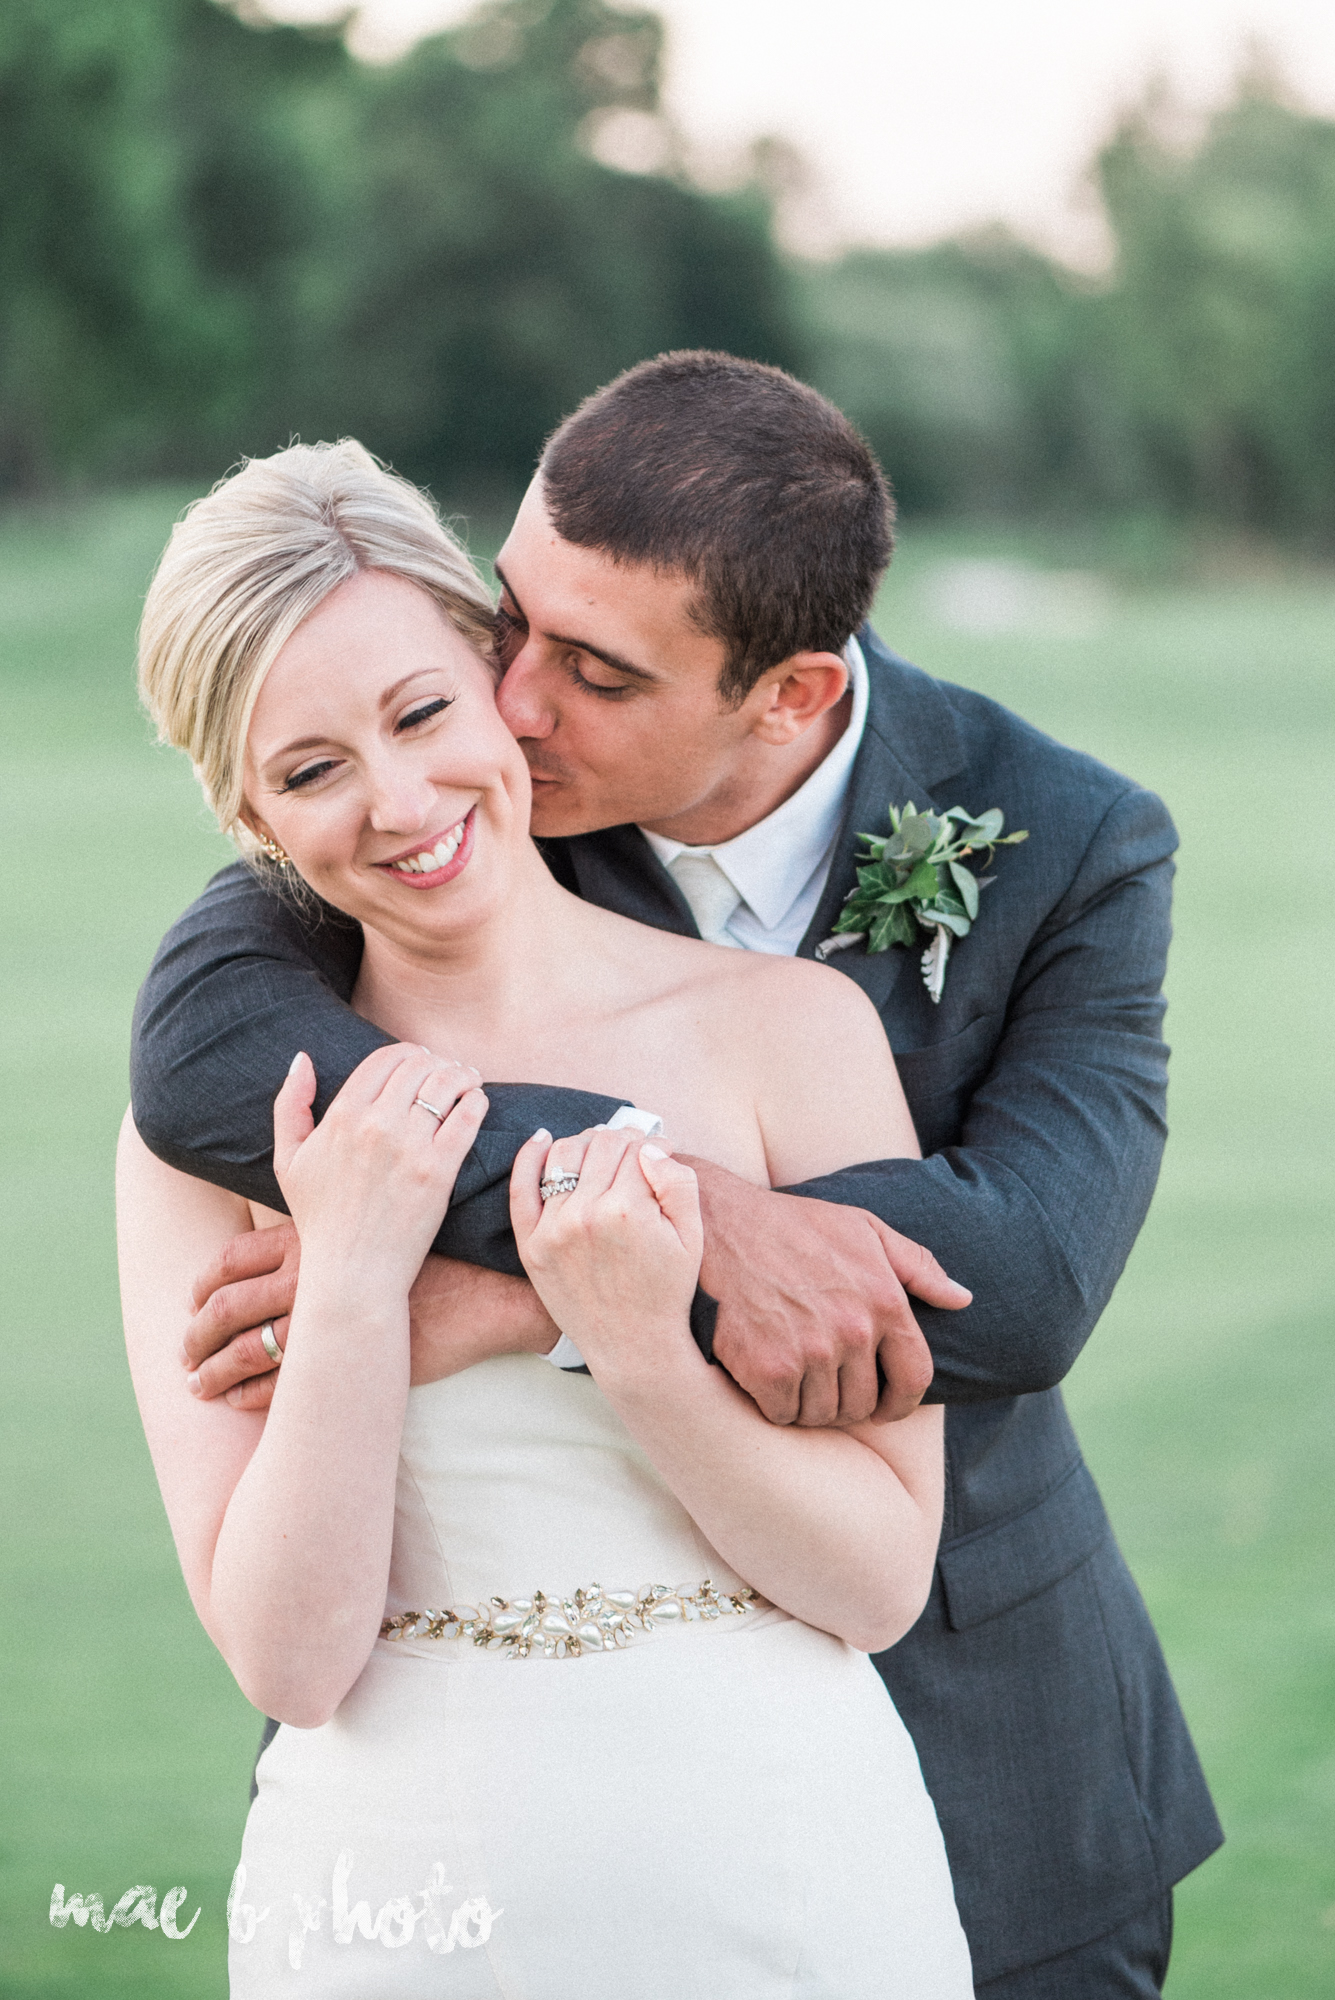 emily and michael's industrial chic summer country club wedding at the lake club in poland ohio photographed by cleveland wedding photographer mae b photo-123.jpg